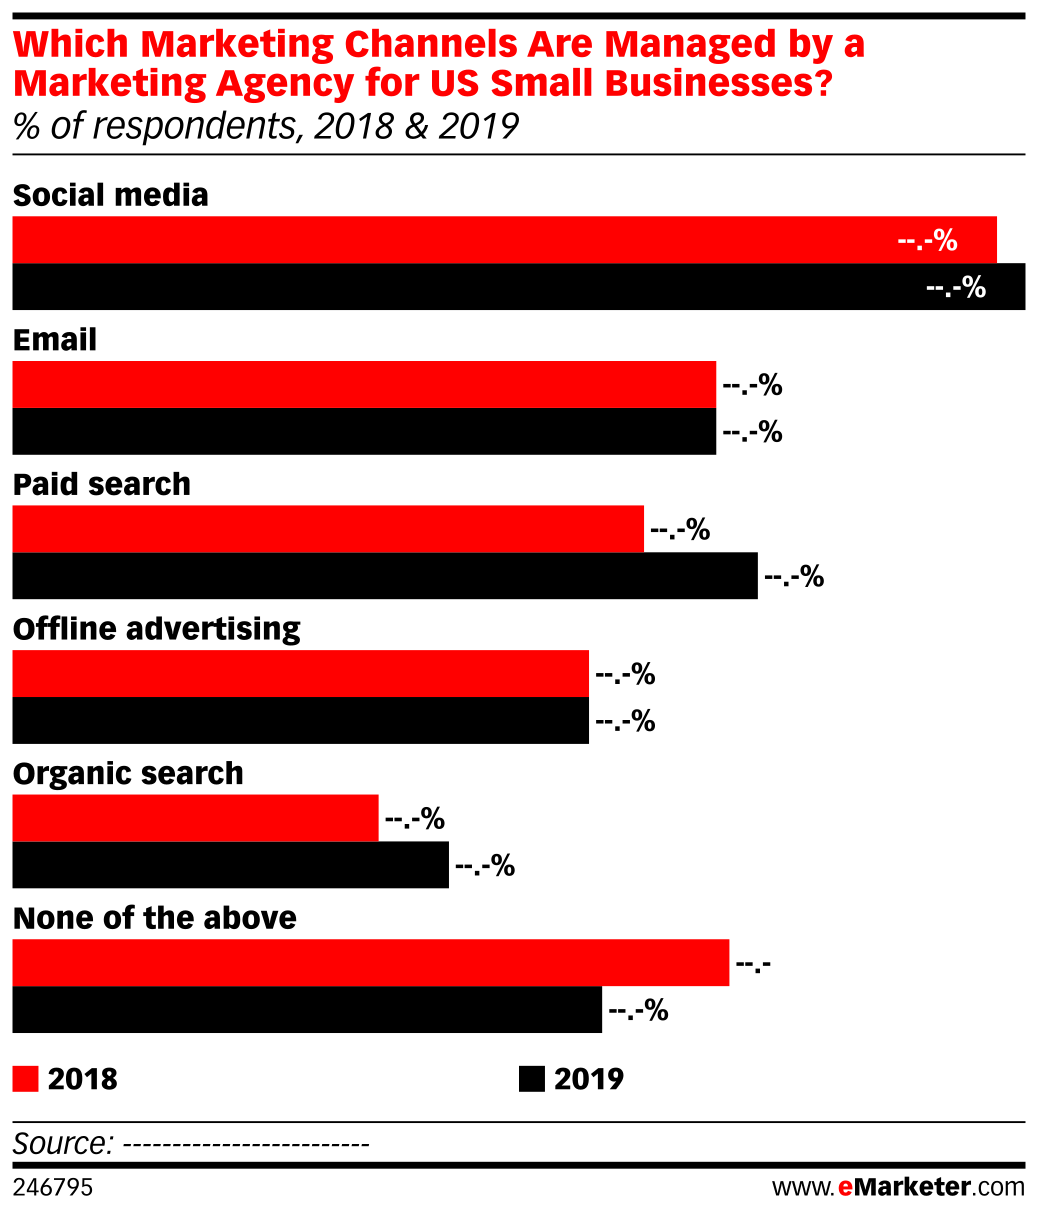 Which Marketing Channels Are Managed by a Marketing Agency for US Small Businesses? (% of respondents, 2018 & 2019)